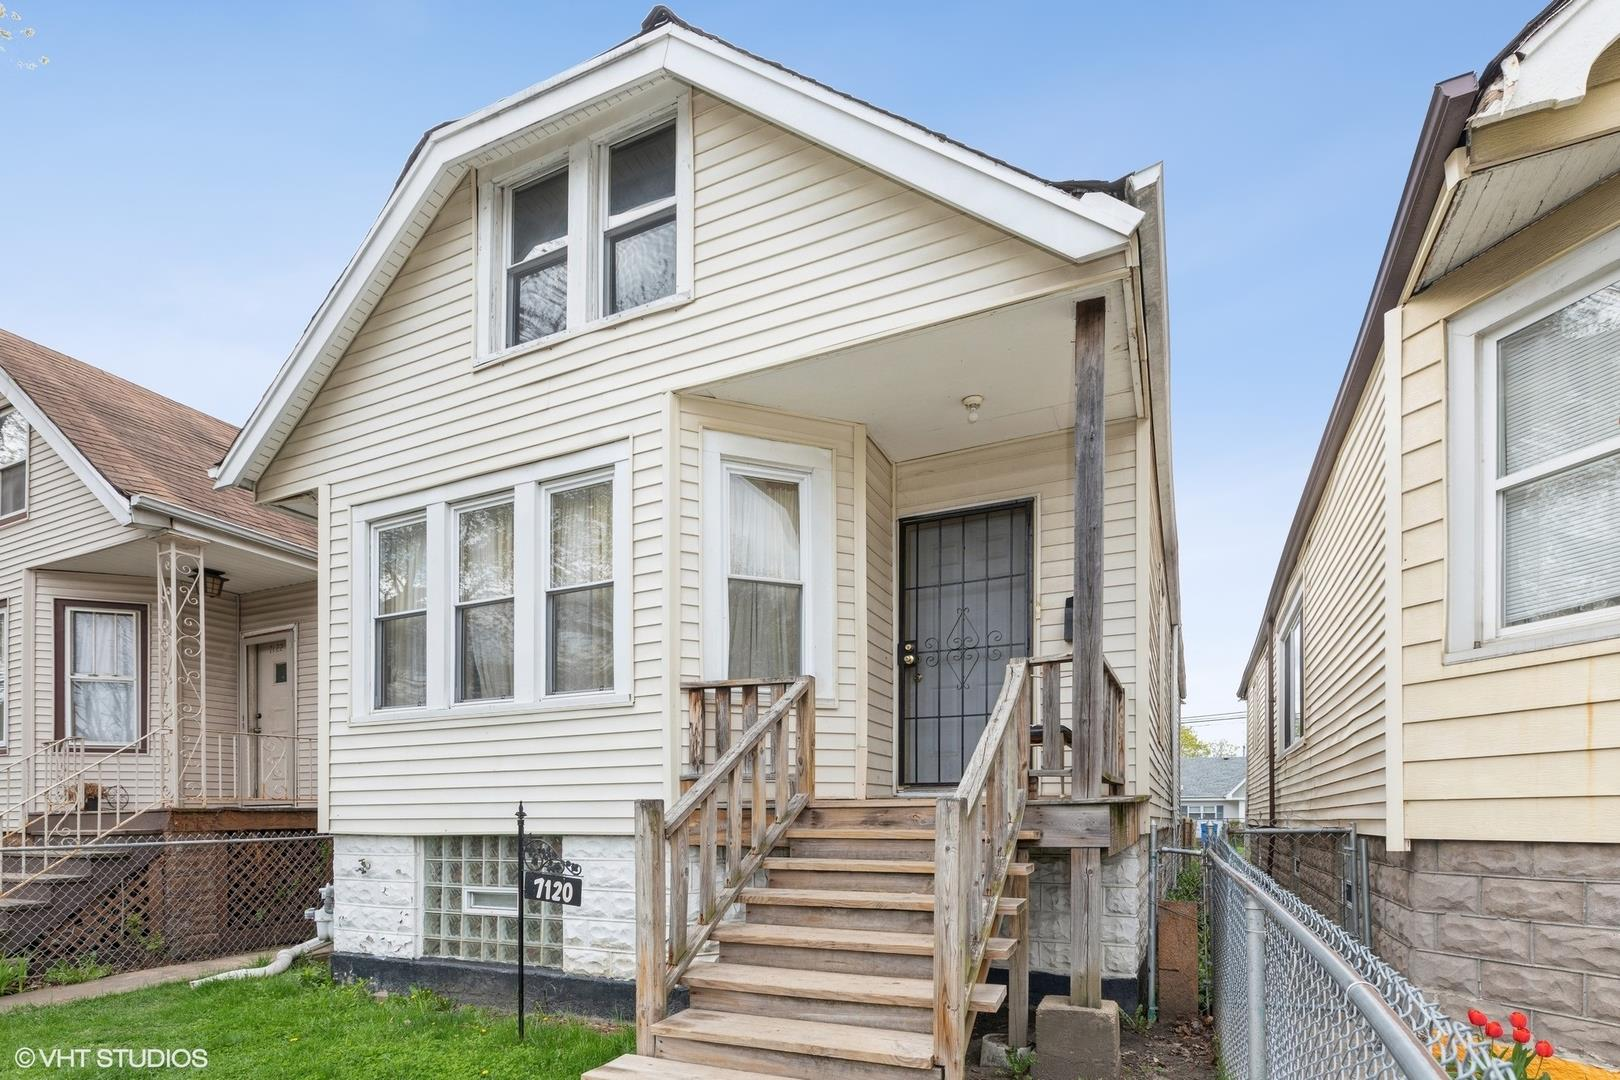 7120 S Seeley Avenue, Chicago, IL 60636 - #: 11050724